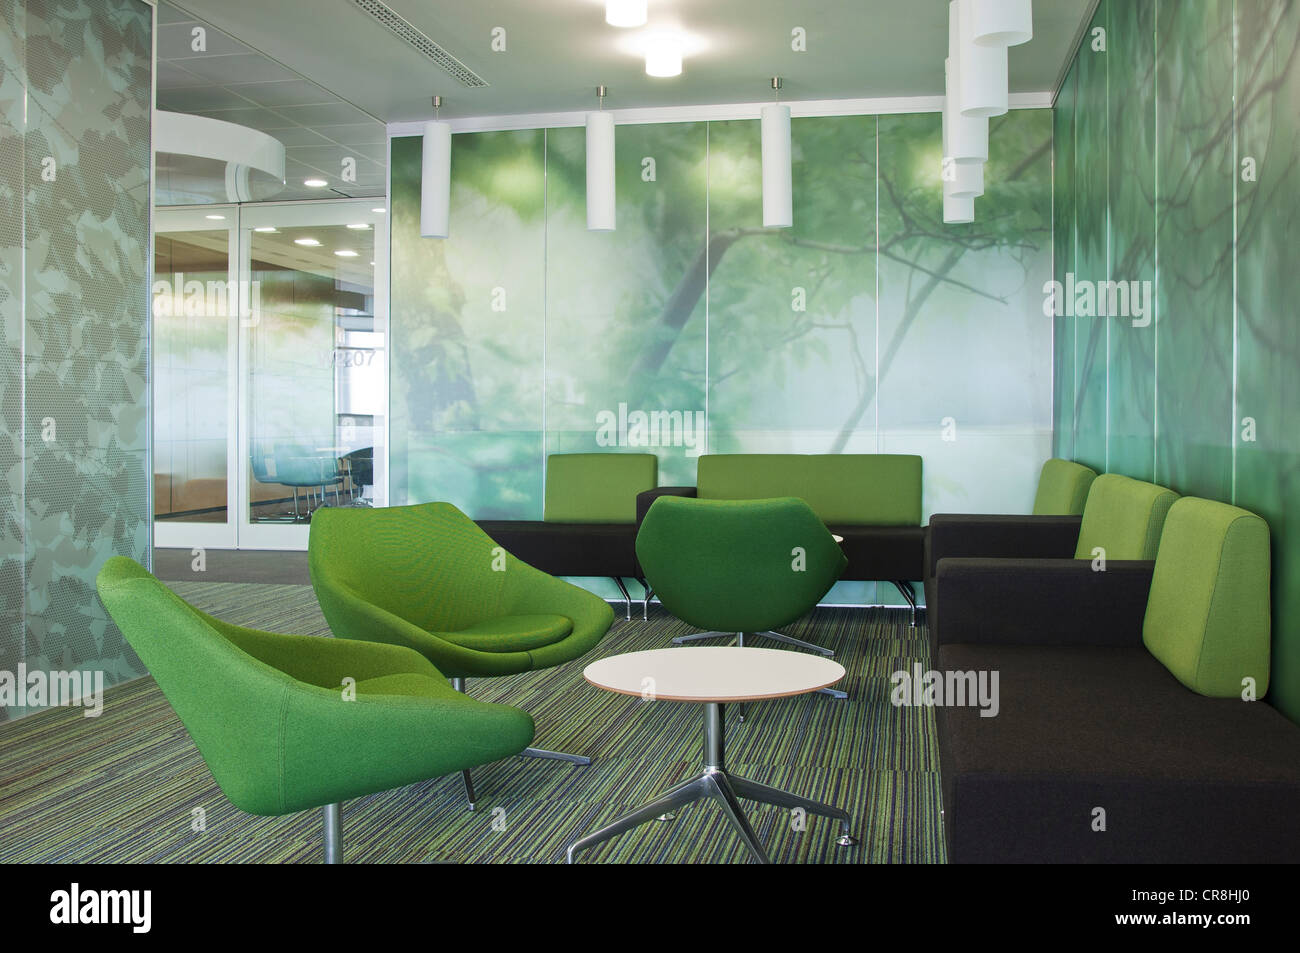 Sofas and chairs in empty office block - Stock Image